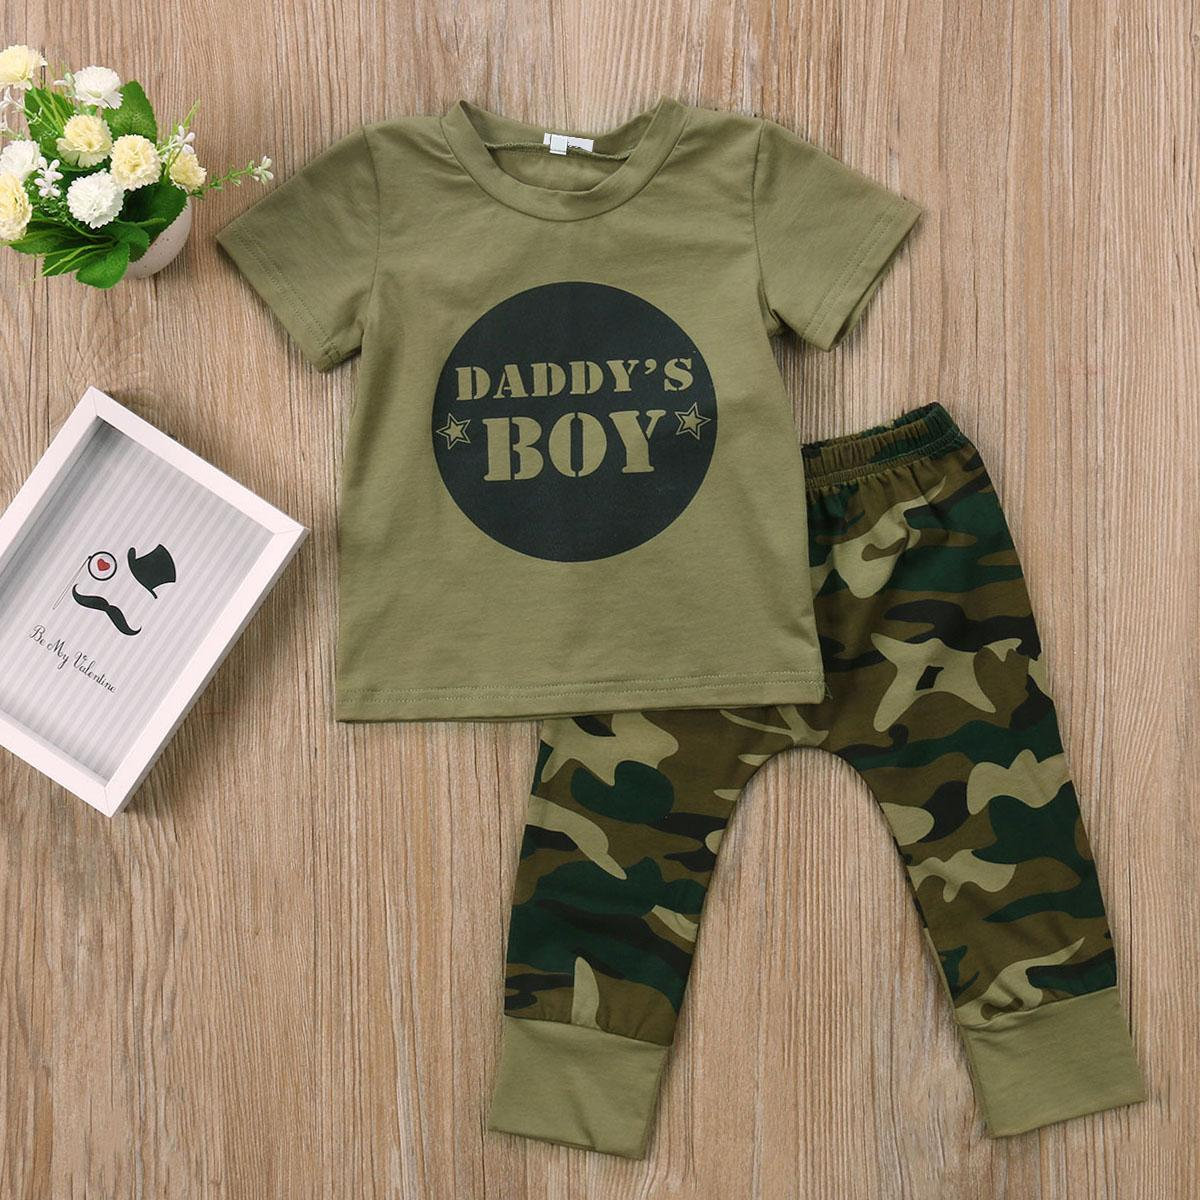 Unisex Baby Clothing Camo T Shirt Tops Pants Outfits Set Clothes 0-24M Two Color